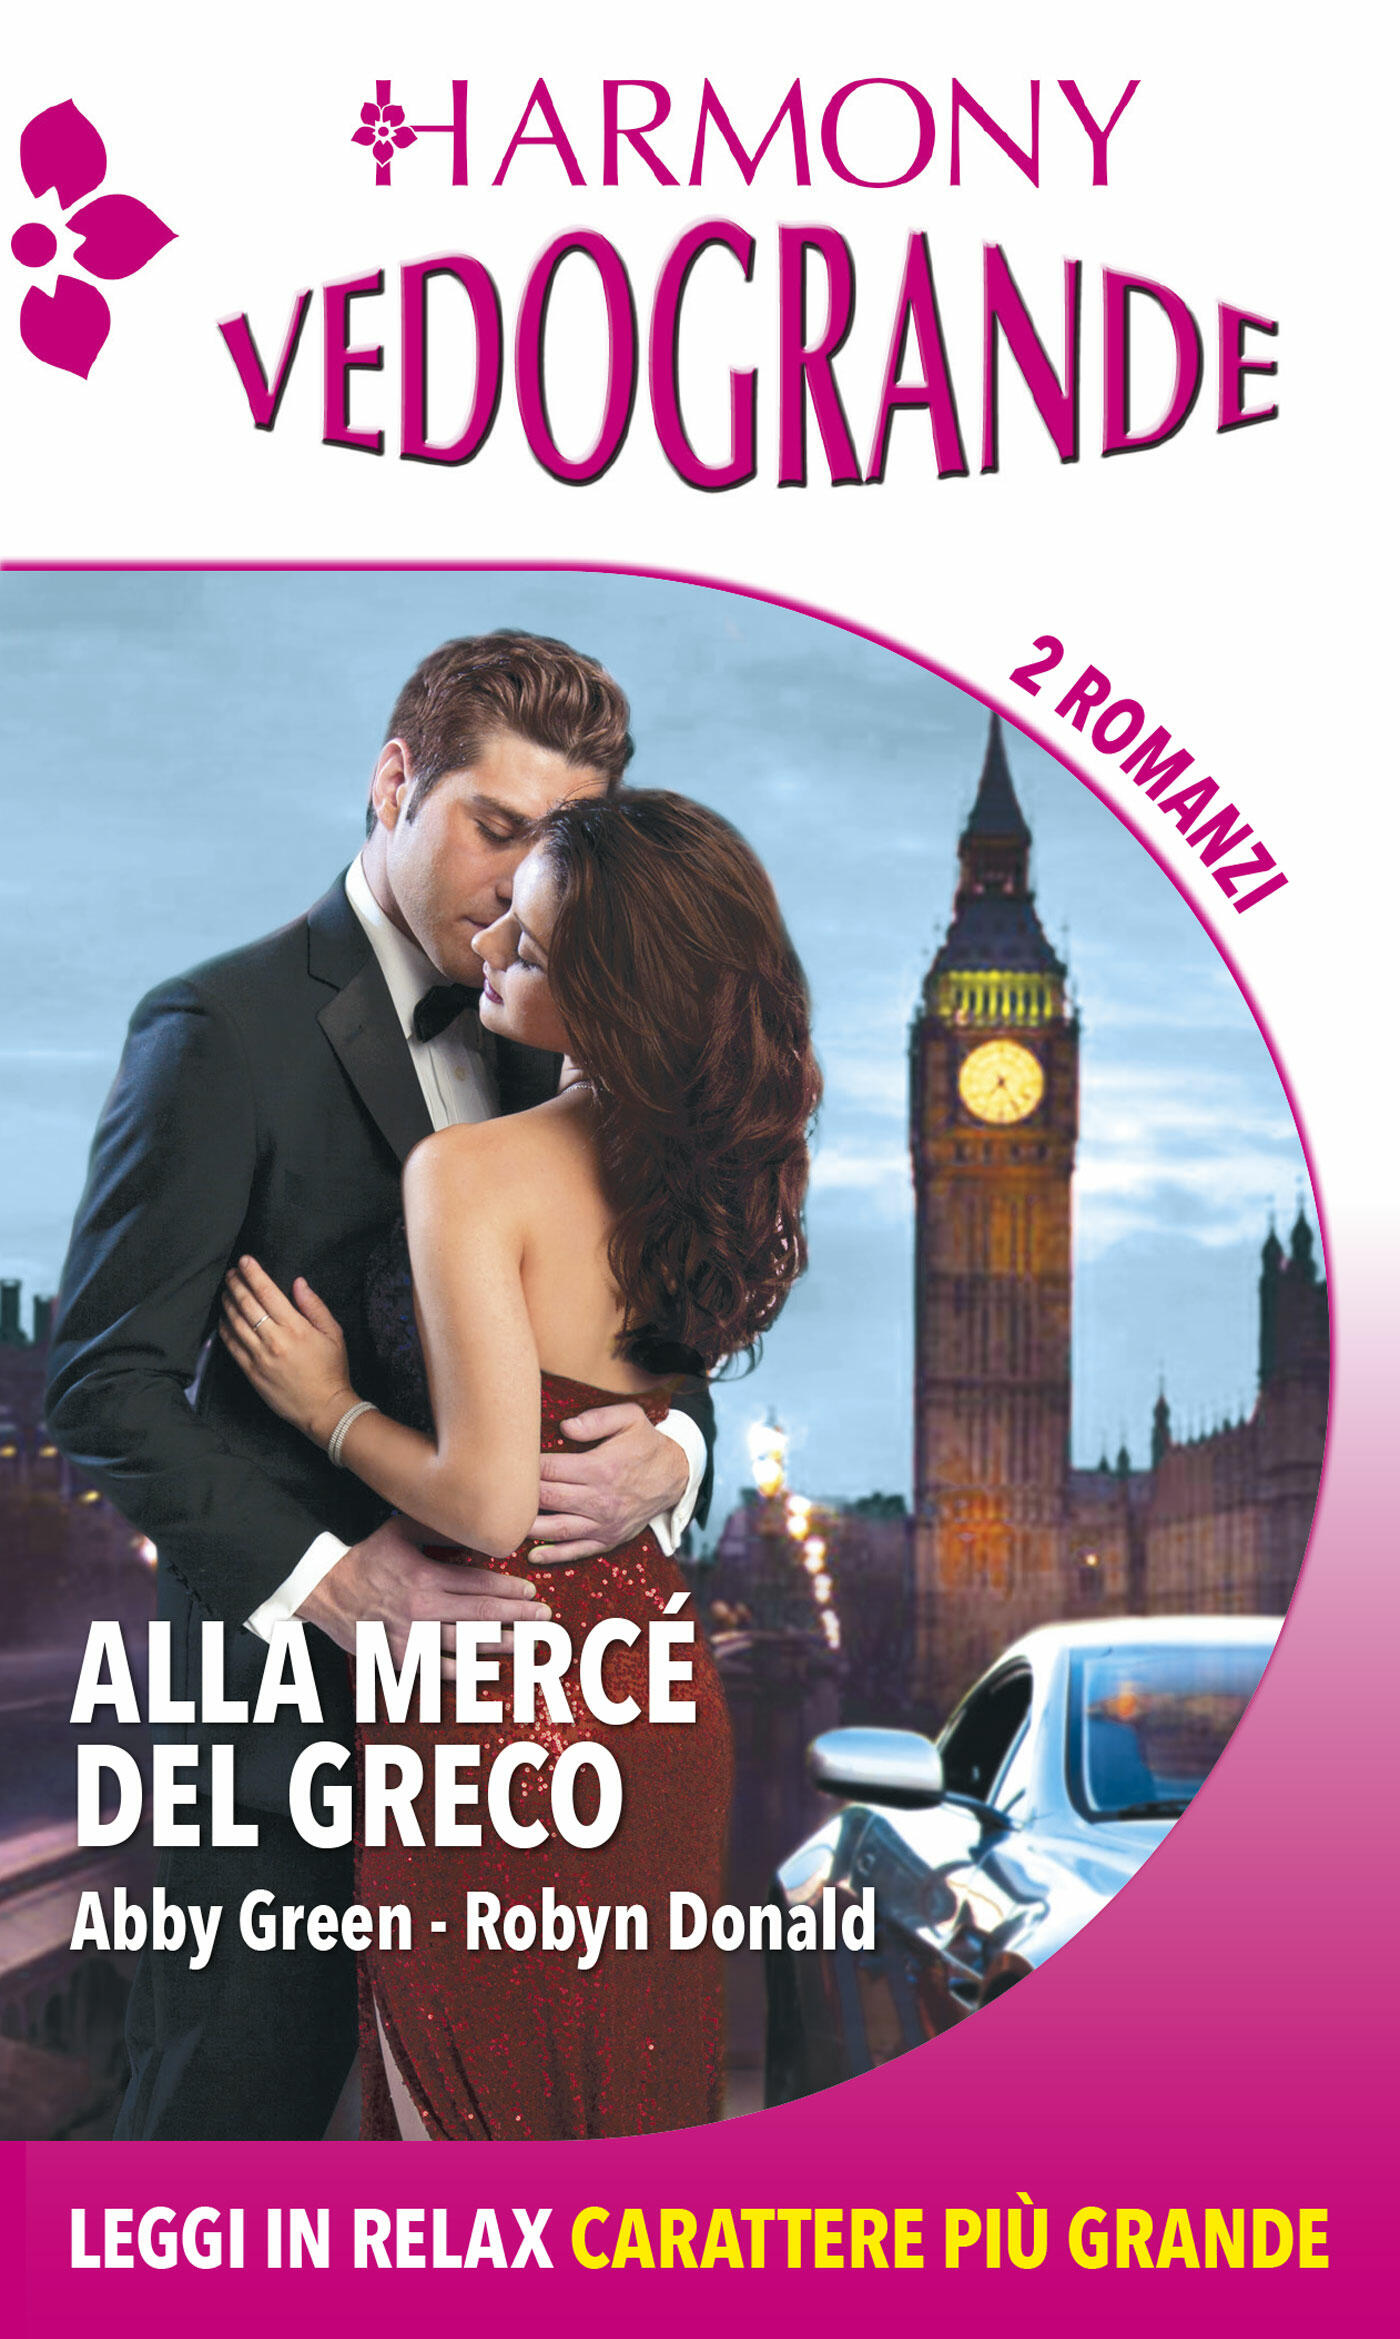 Alla merc del greco donald robyn green abby ebook for Merce in regalo